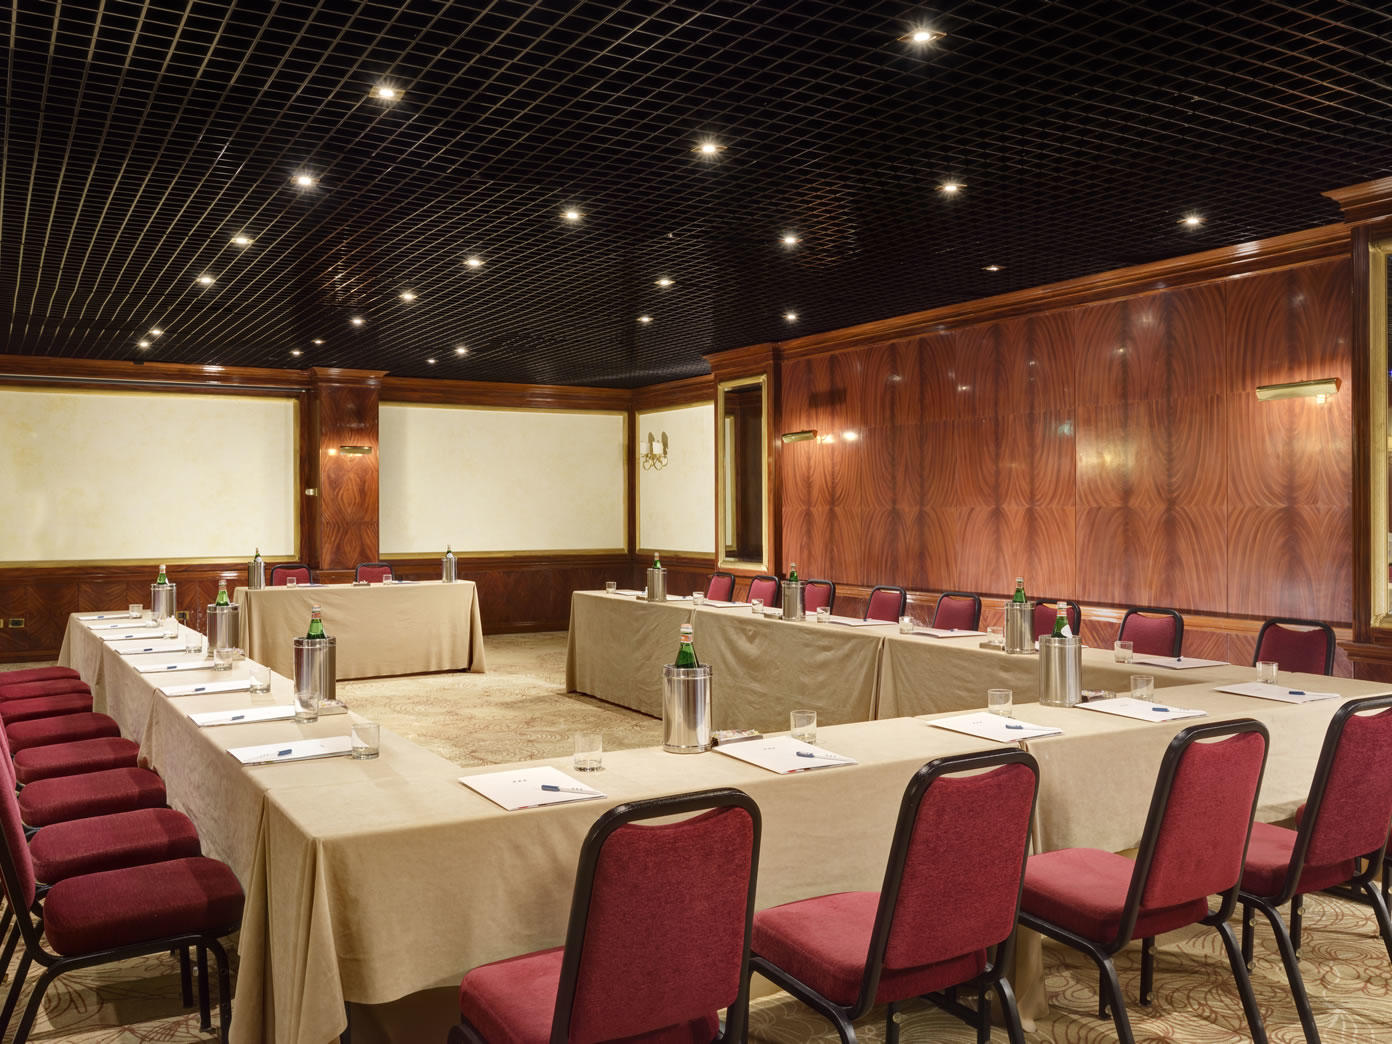 Svezia Meeting Room | Scandinavia Milano